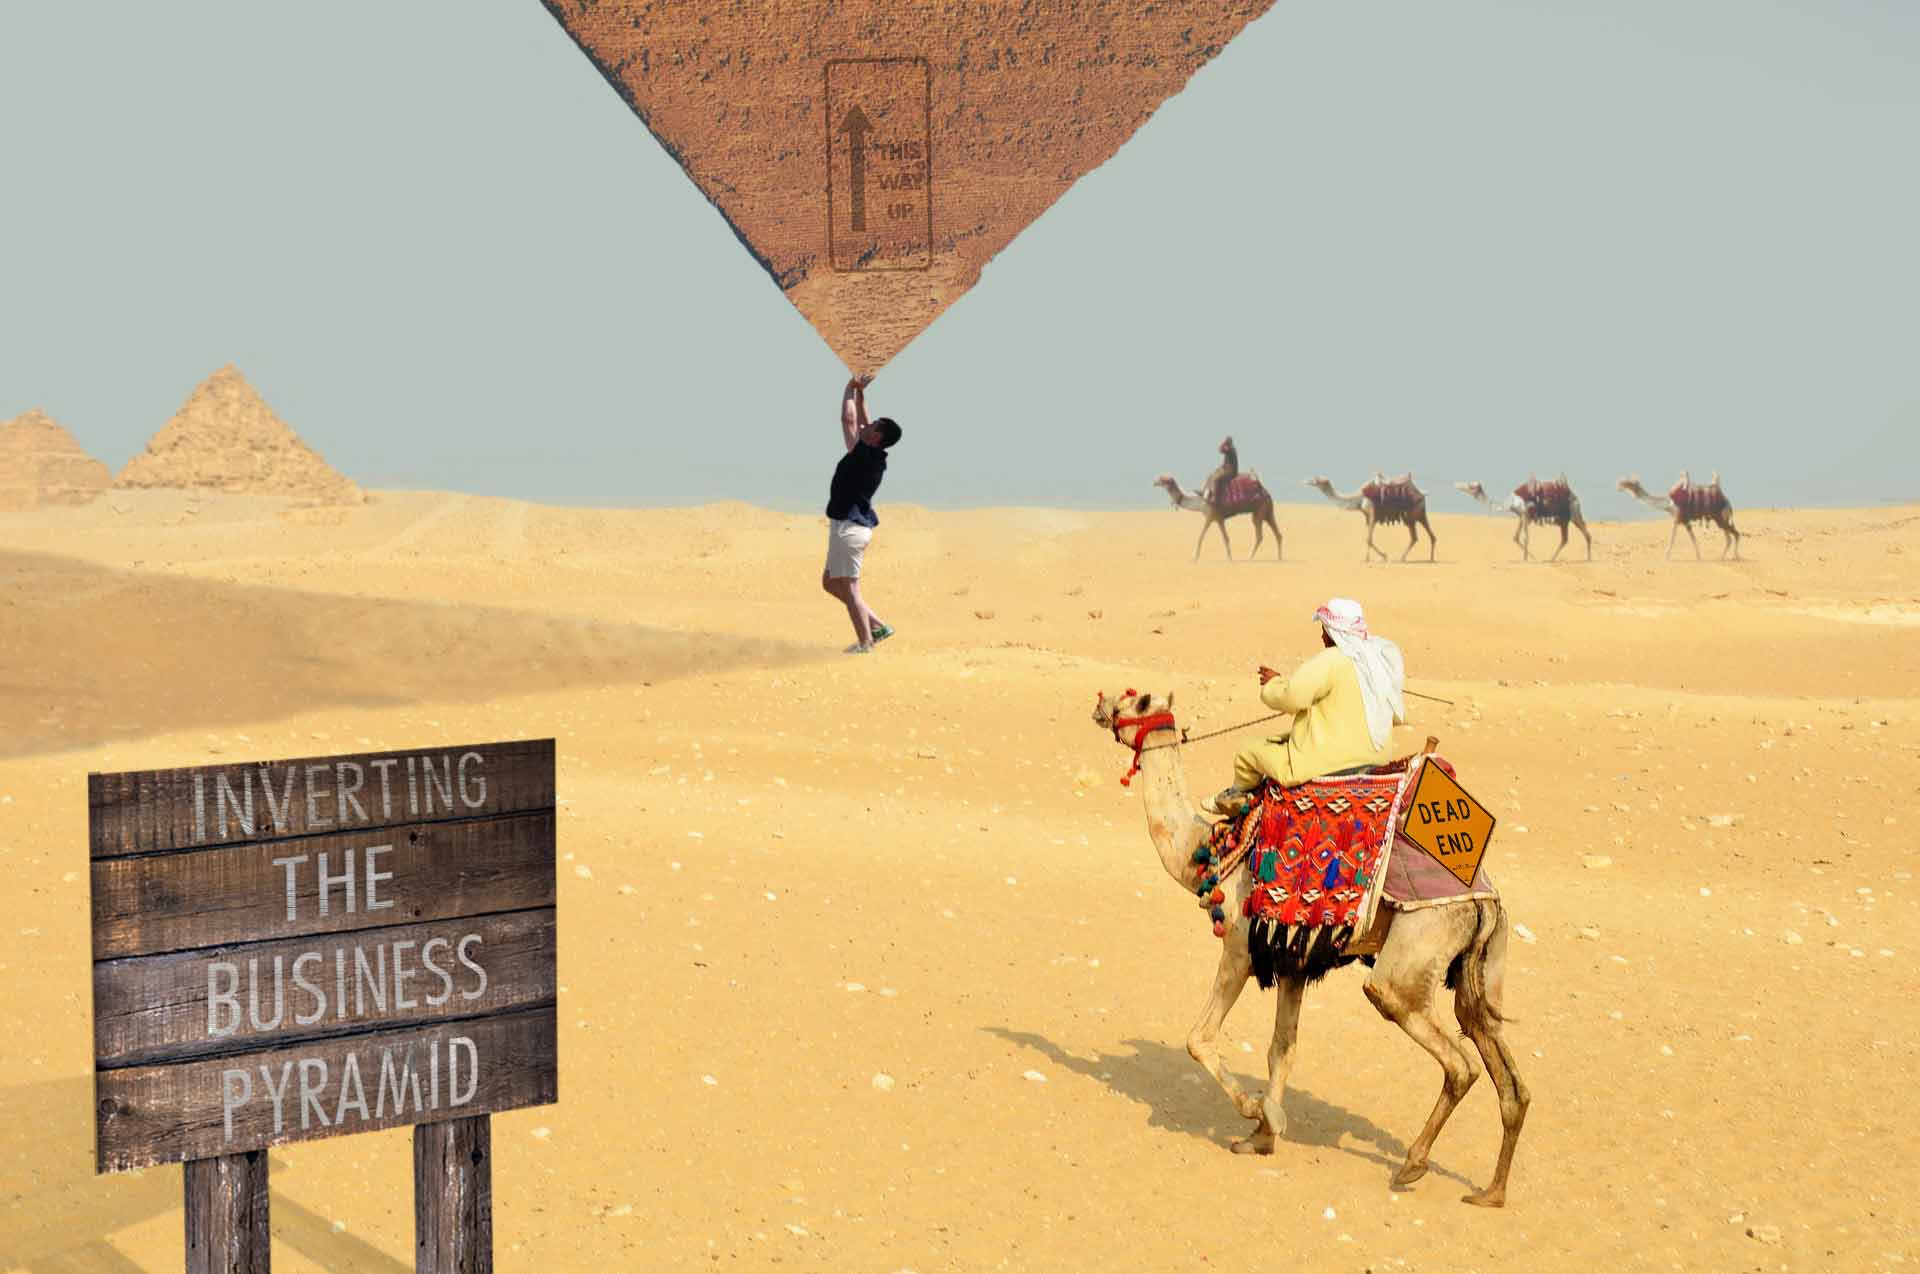 Standing in the desert lifting and inverting the big business pyramid upside down amongst the surprised camel riders